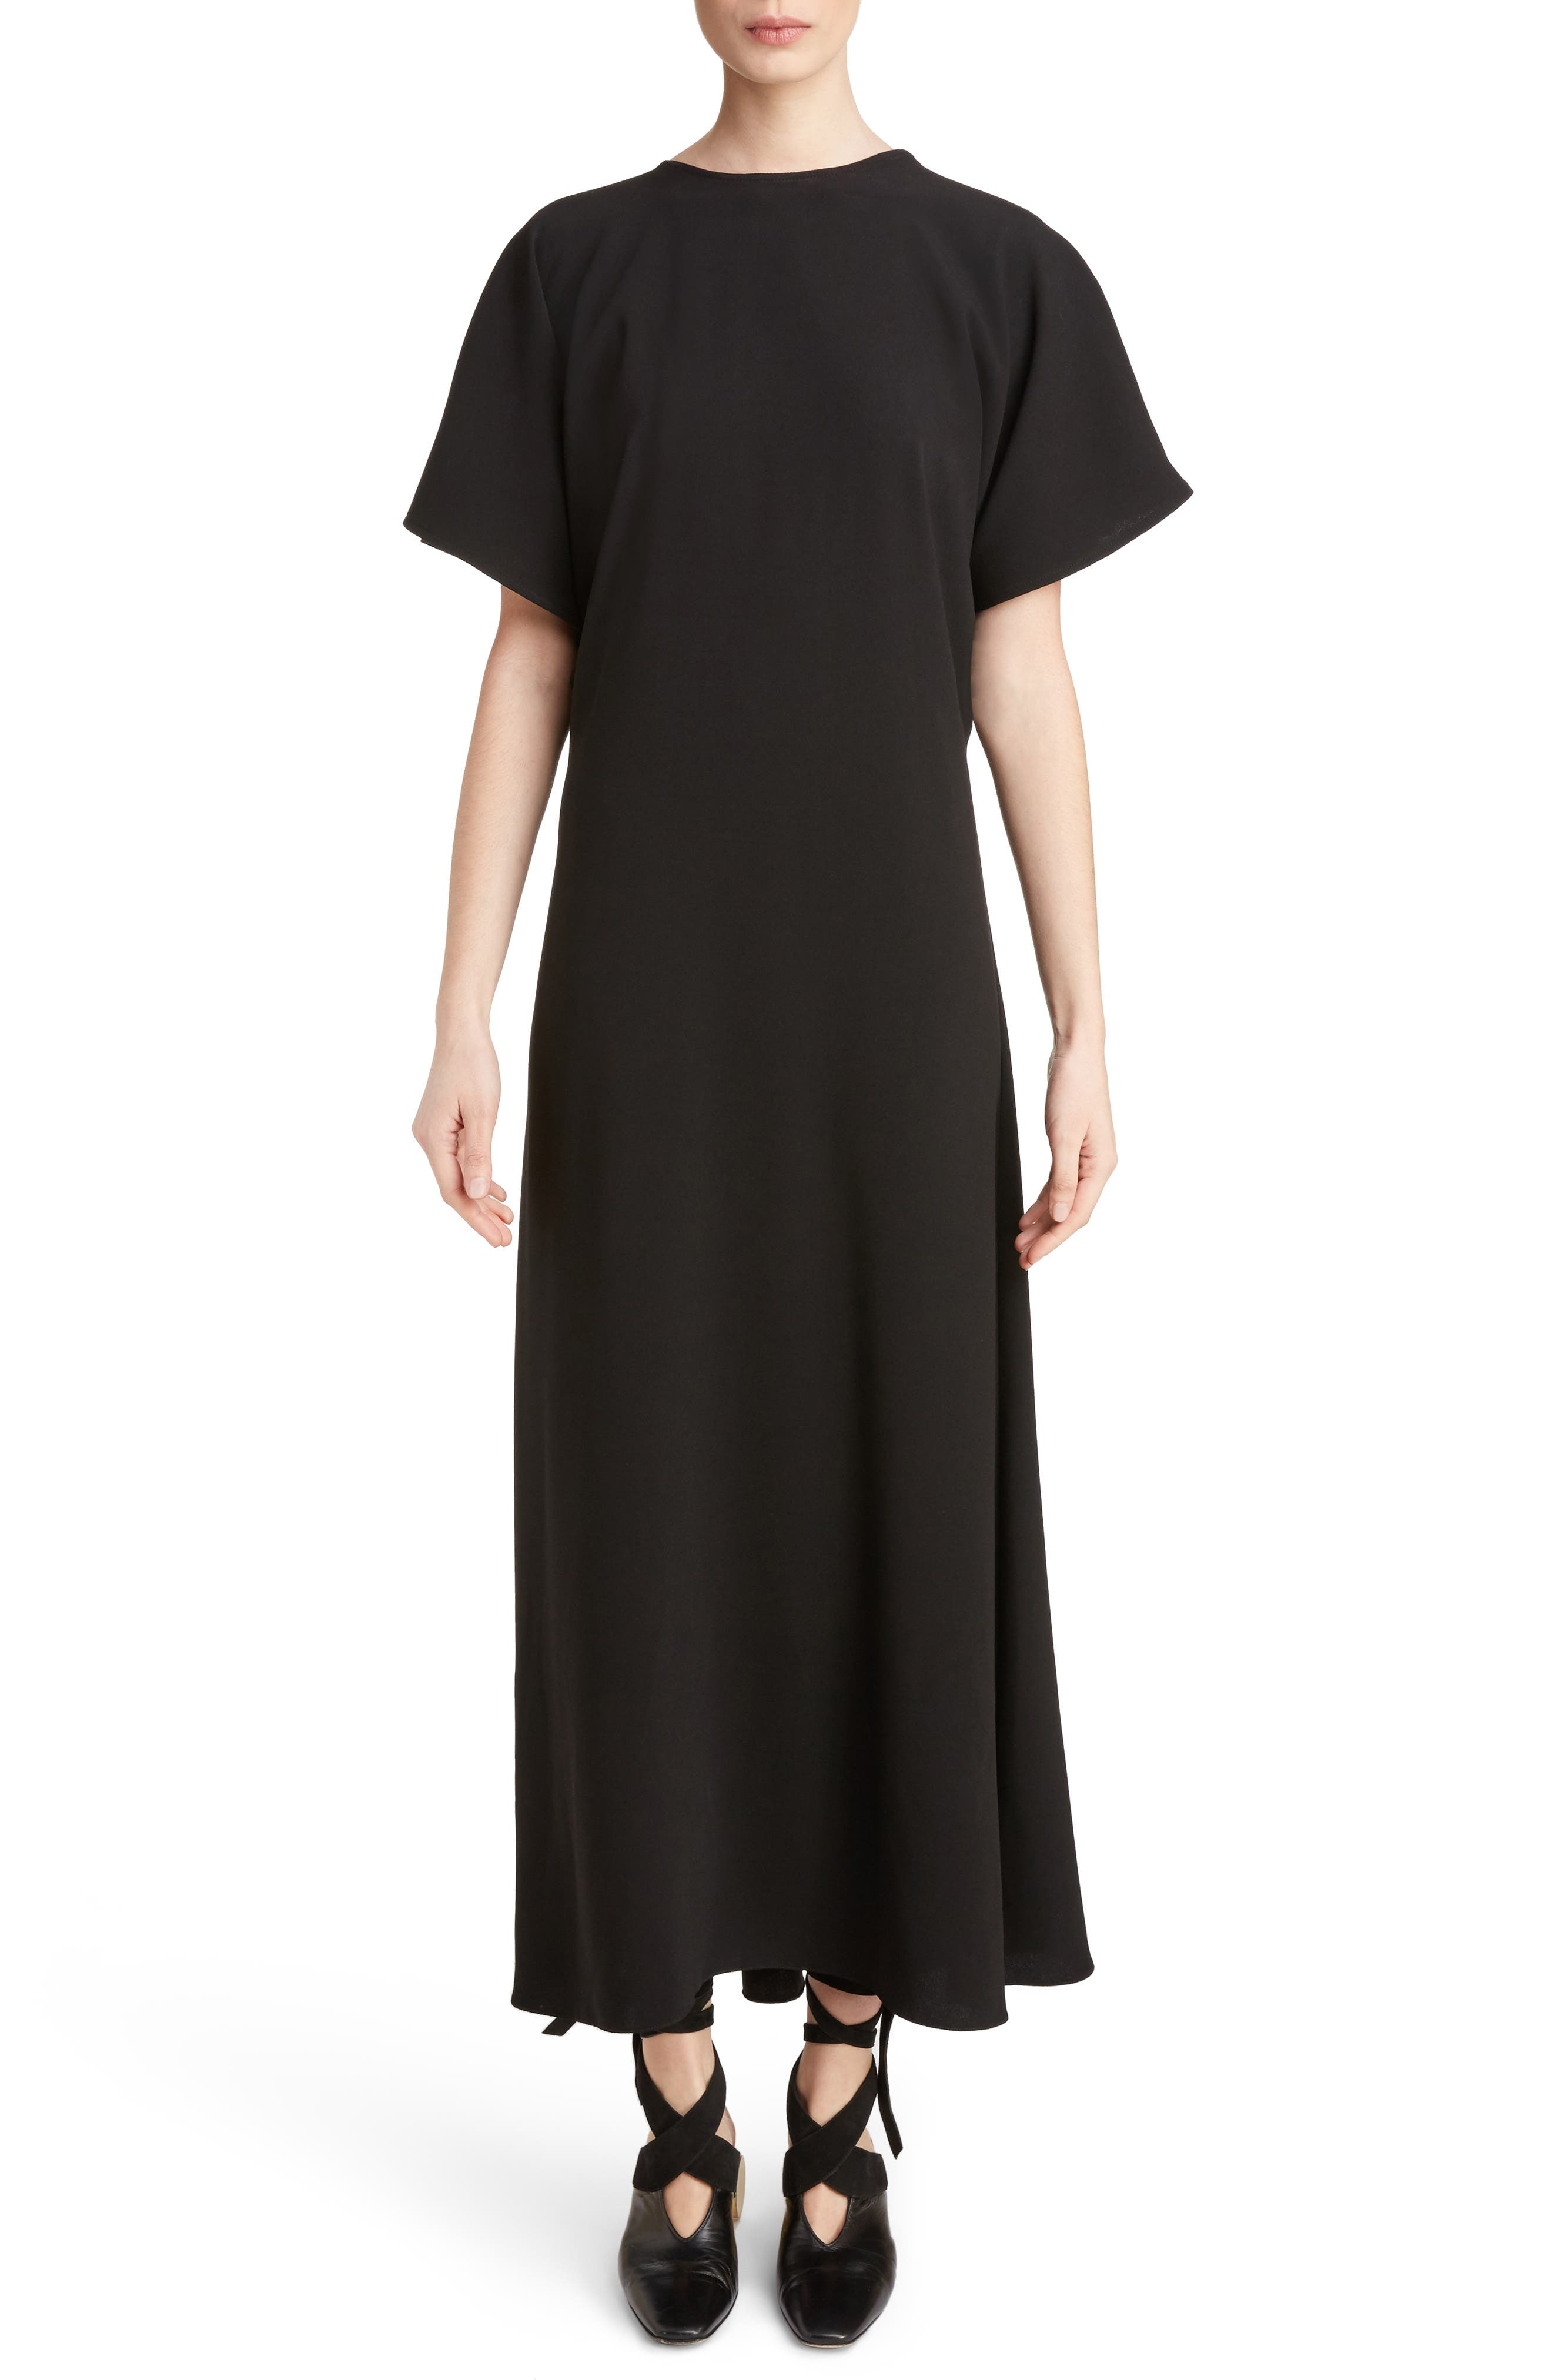 J.W.ANDERSON Cap Sleeve Maxi Dress,                             Main thumbnail 1, color,                             Black